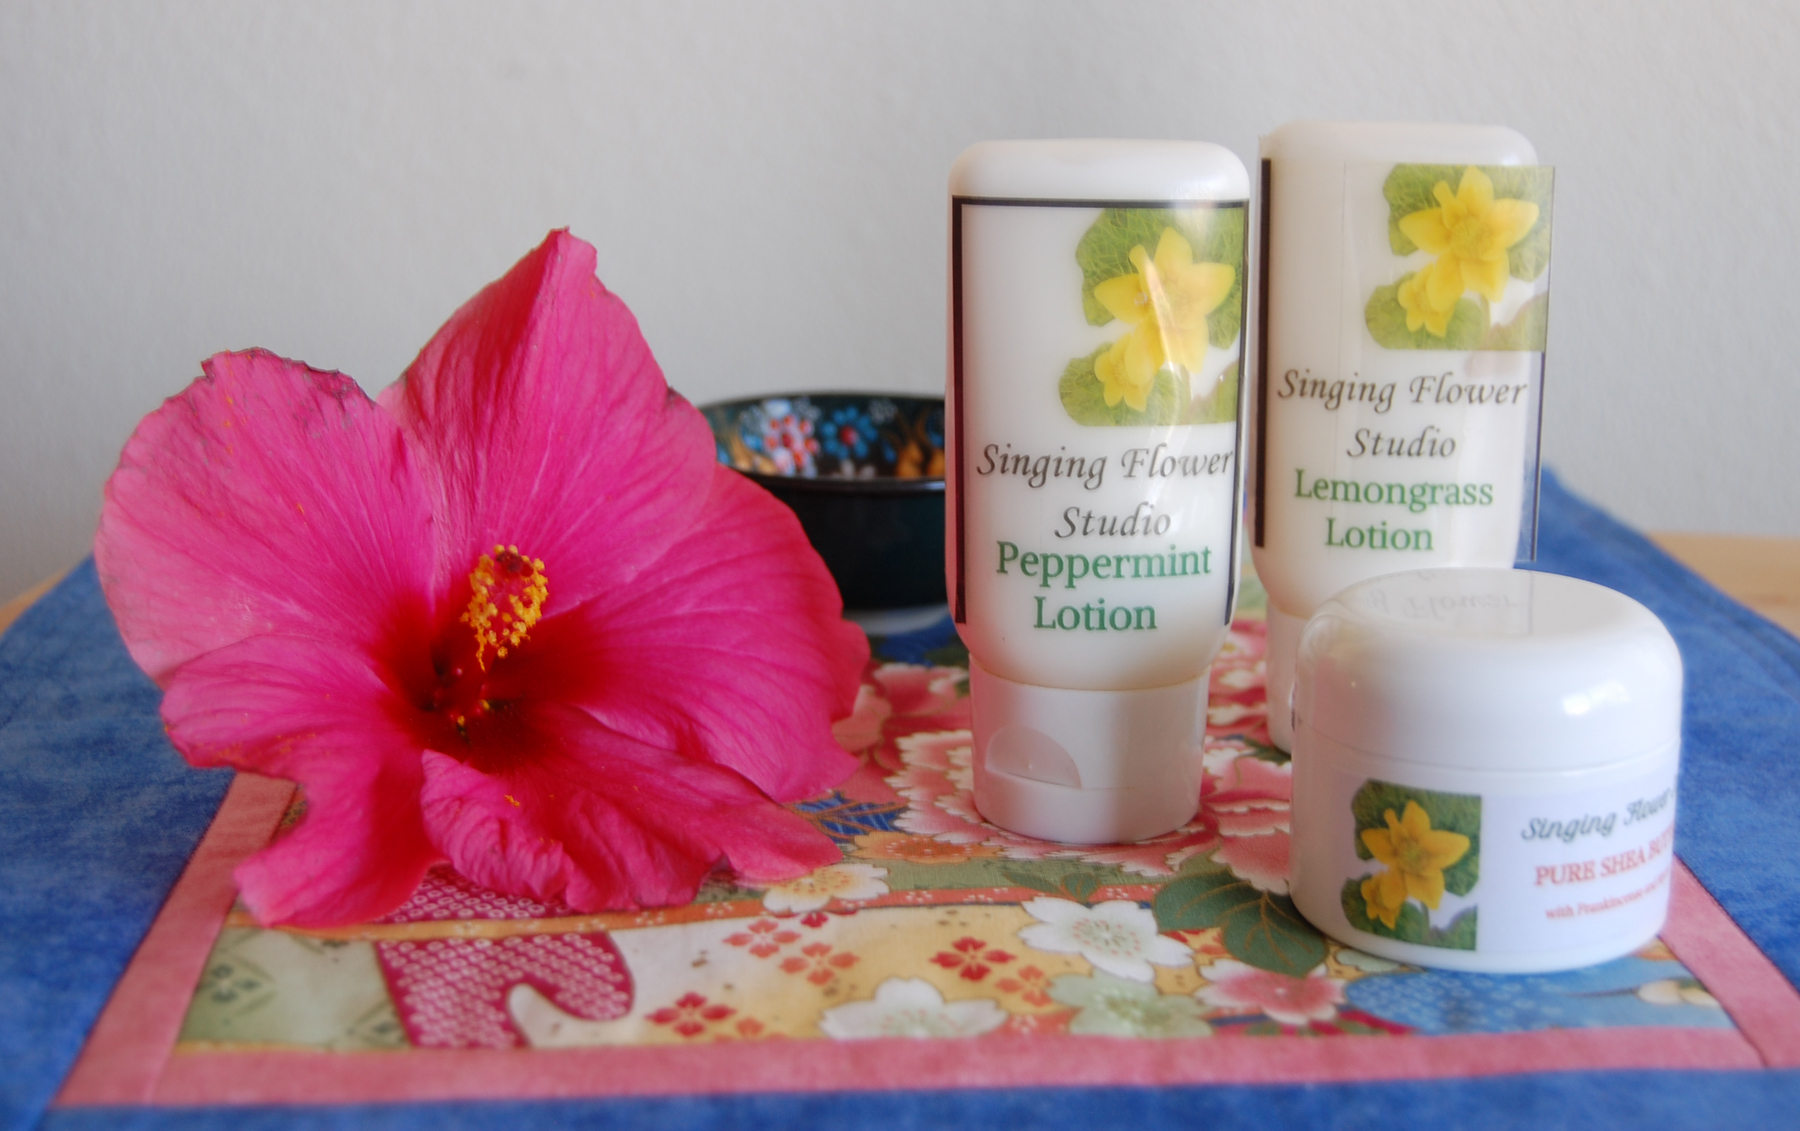 Singing Flower Products Make Great Gifts for Vegans